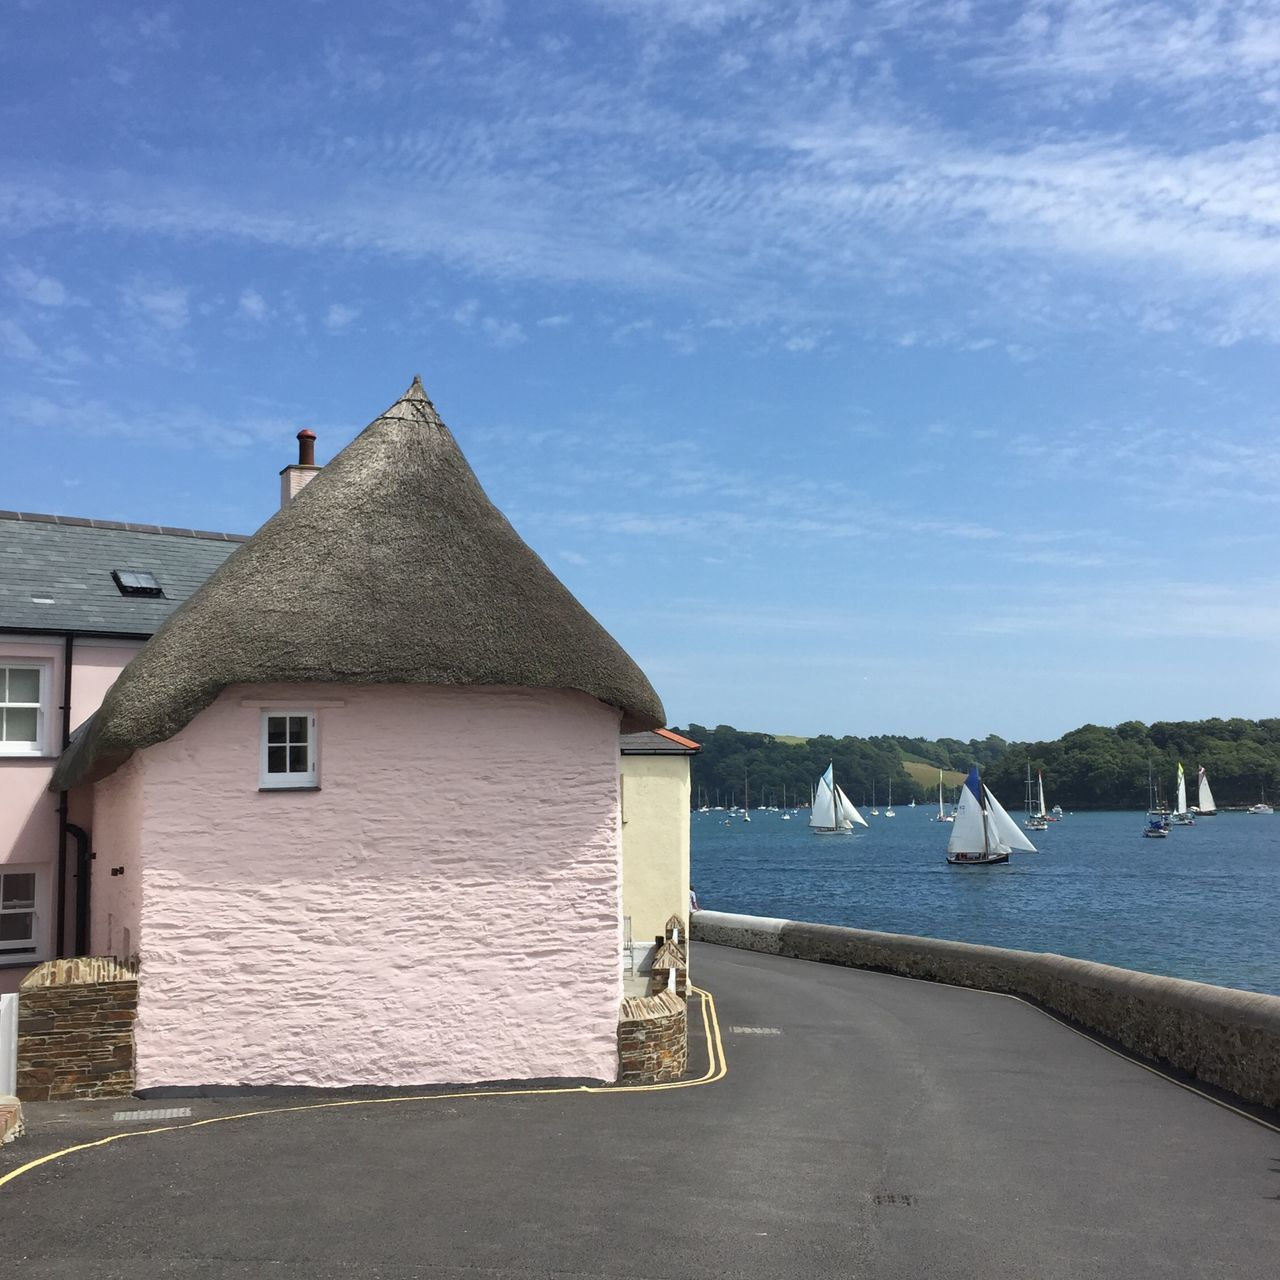 One eyed house. Cottage Cornish Cottage Cornwall Cornwall Cottage St Mawes Summer Village Cornish Village Cornwall Village Cornwall Uk Seaside Seaside Village Pink House Boats Yachts White Boats Sailing Boat Sailing